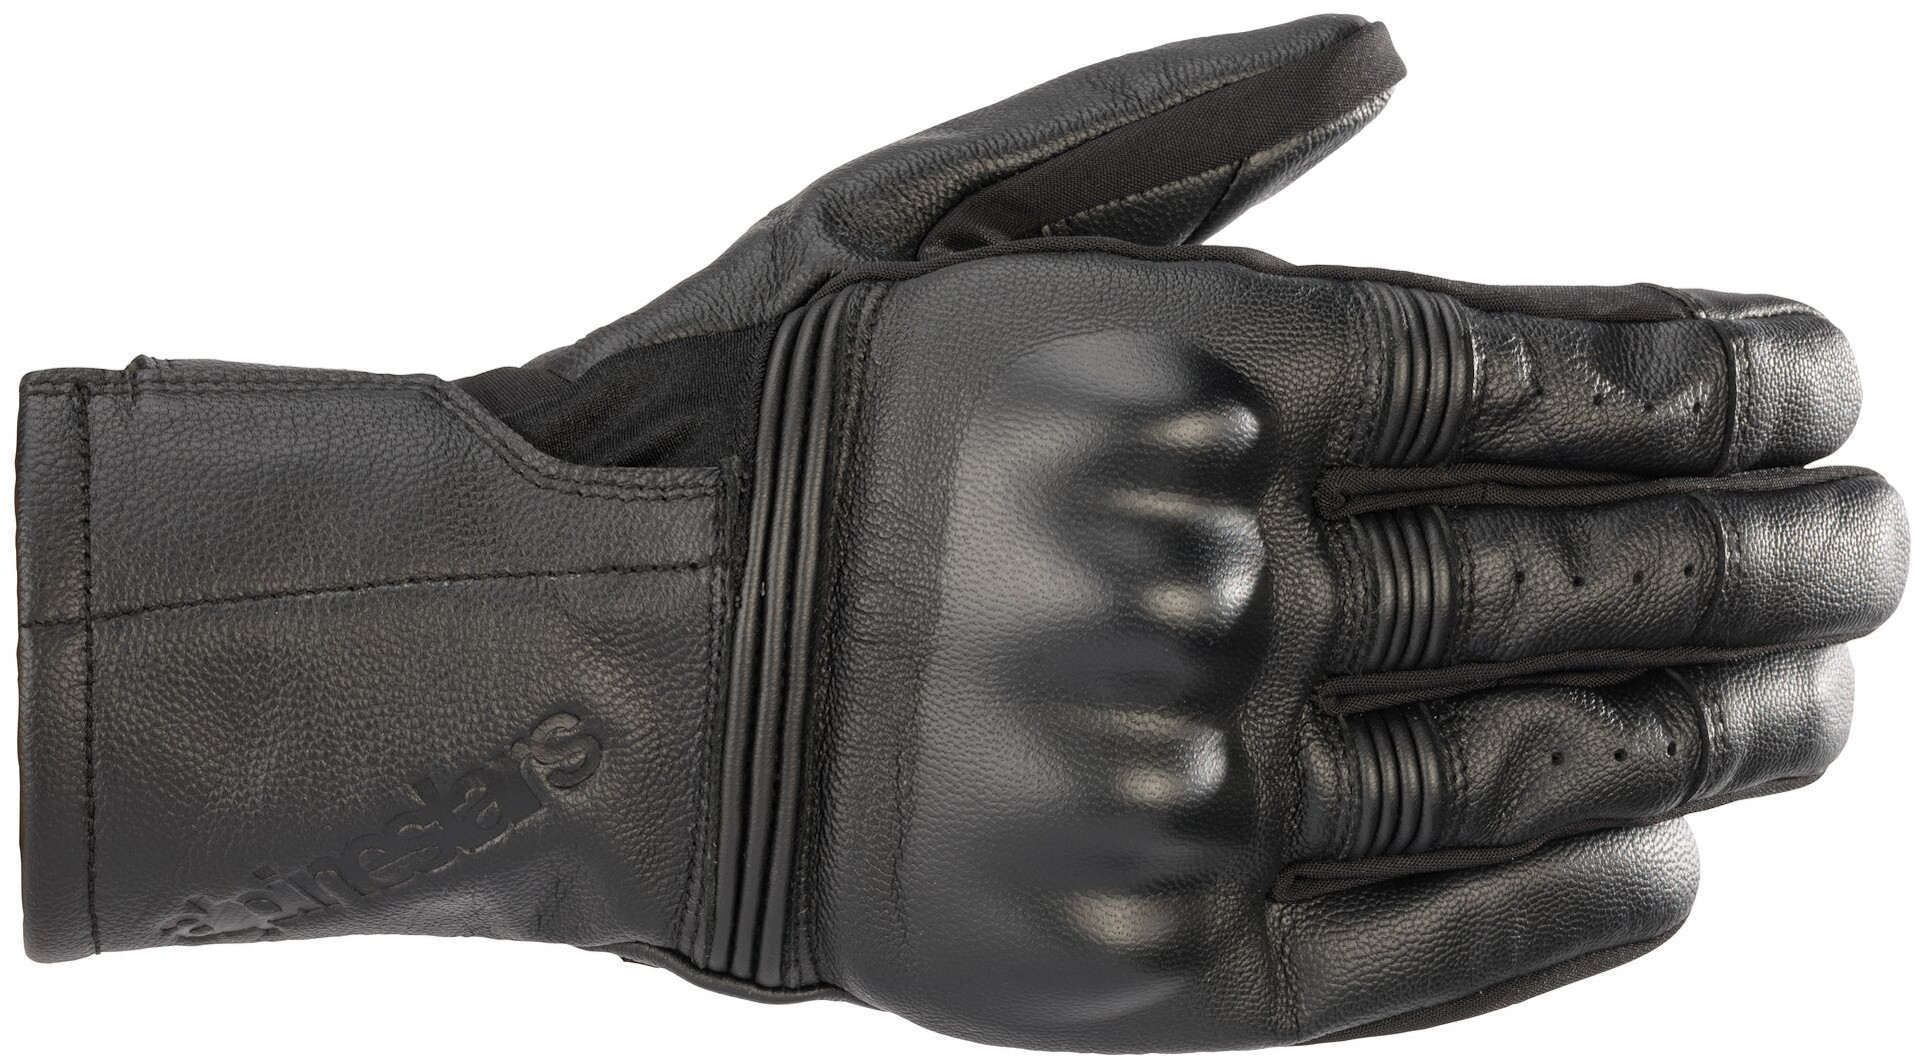 Guanti pelle Alpinestars GARETH LEATHER nero 1